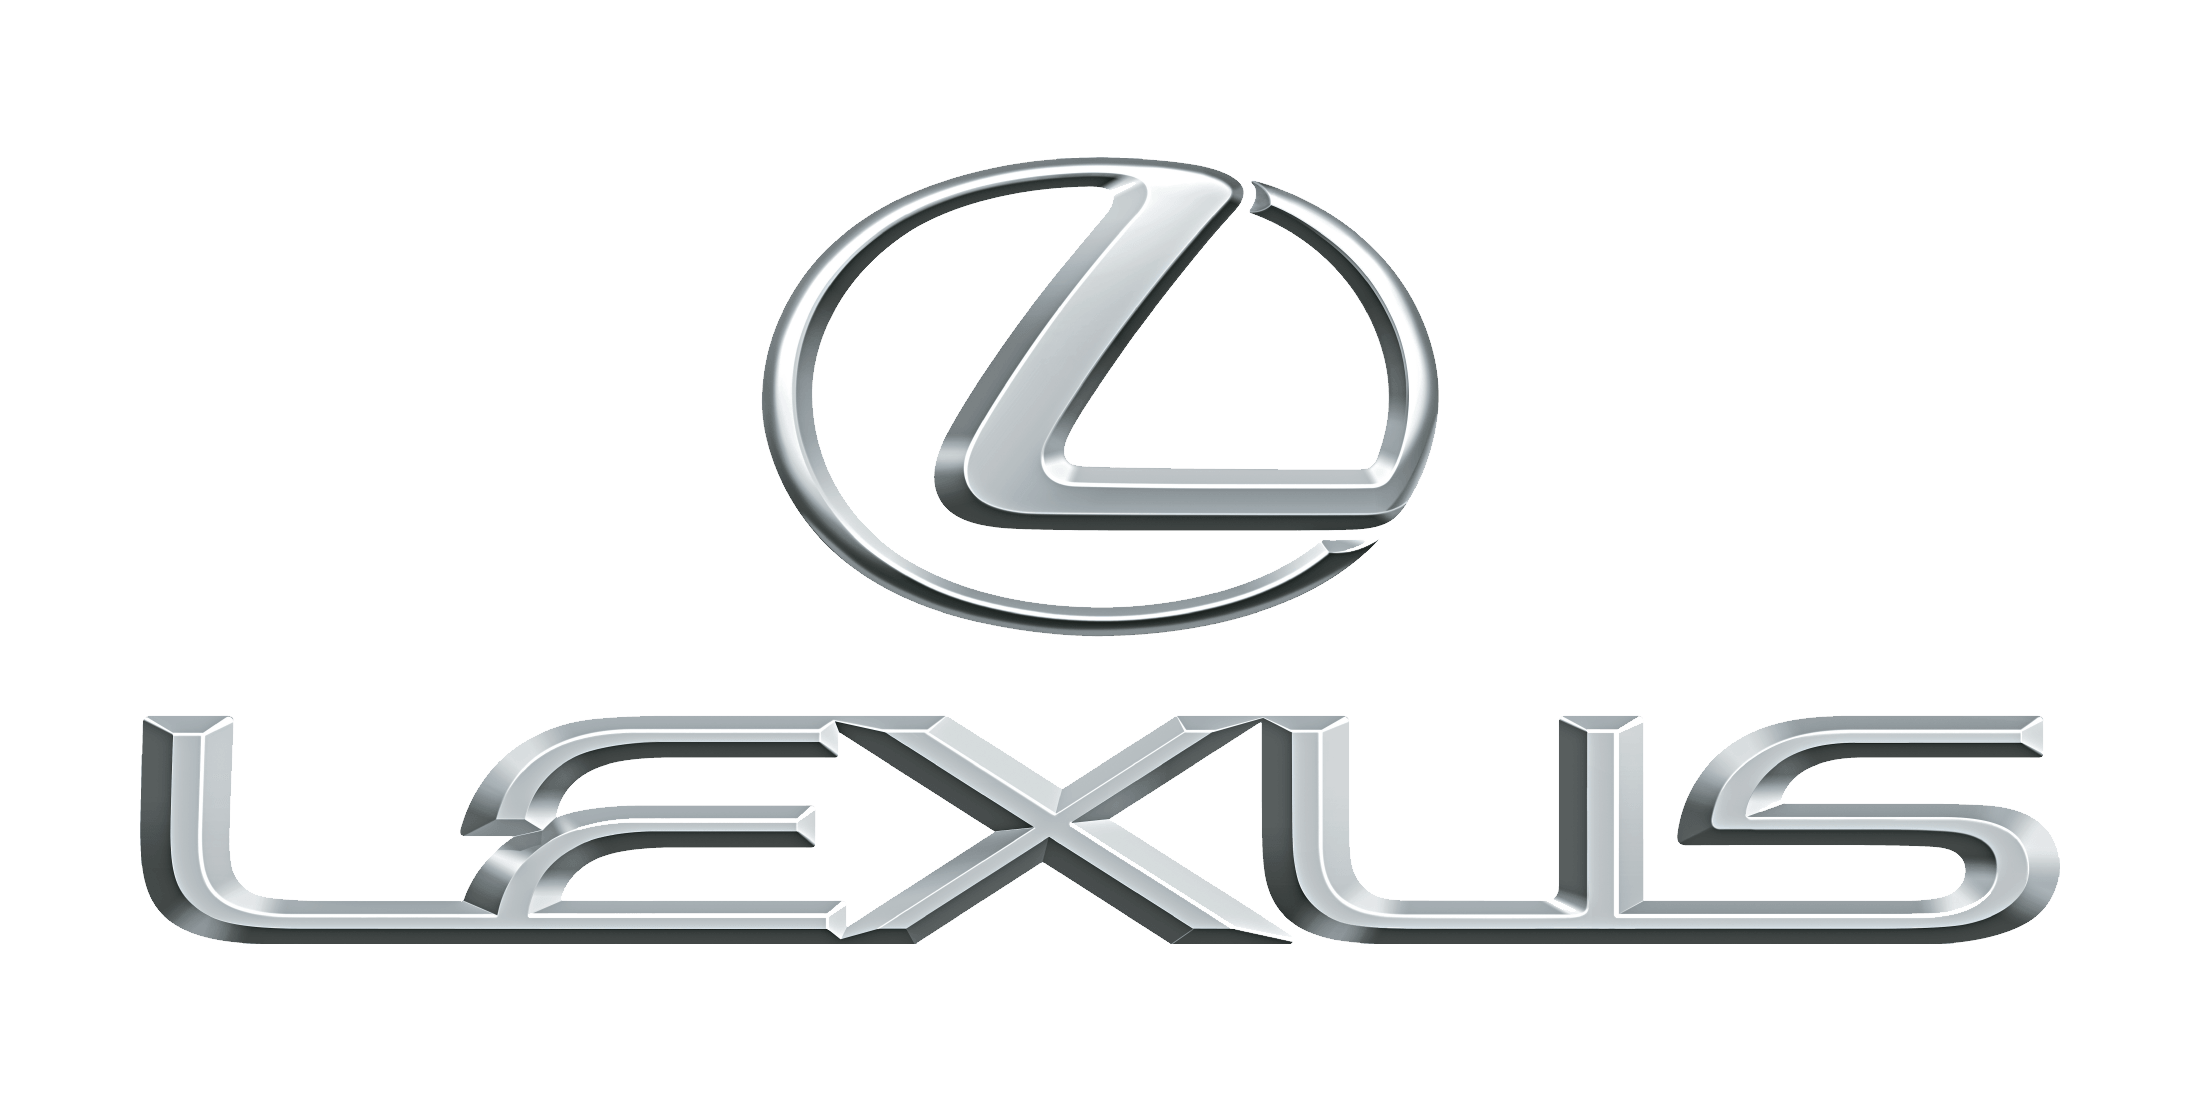 Image result for 2017 lexus symbol